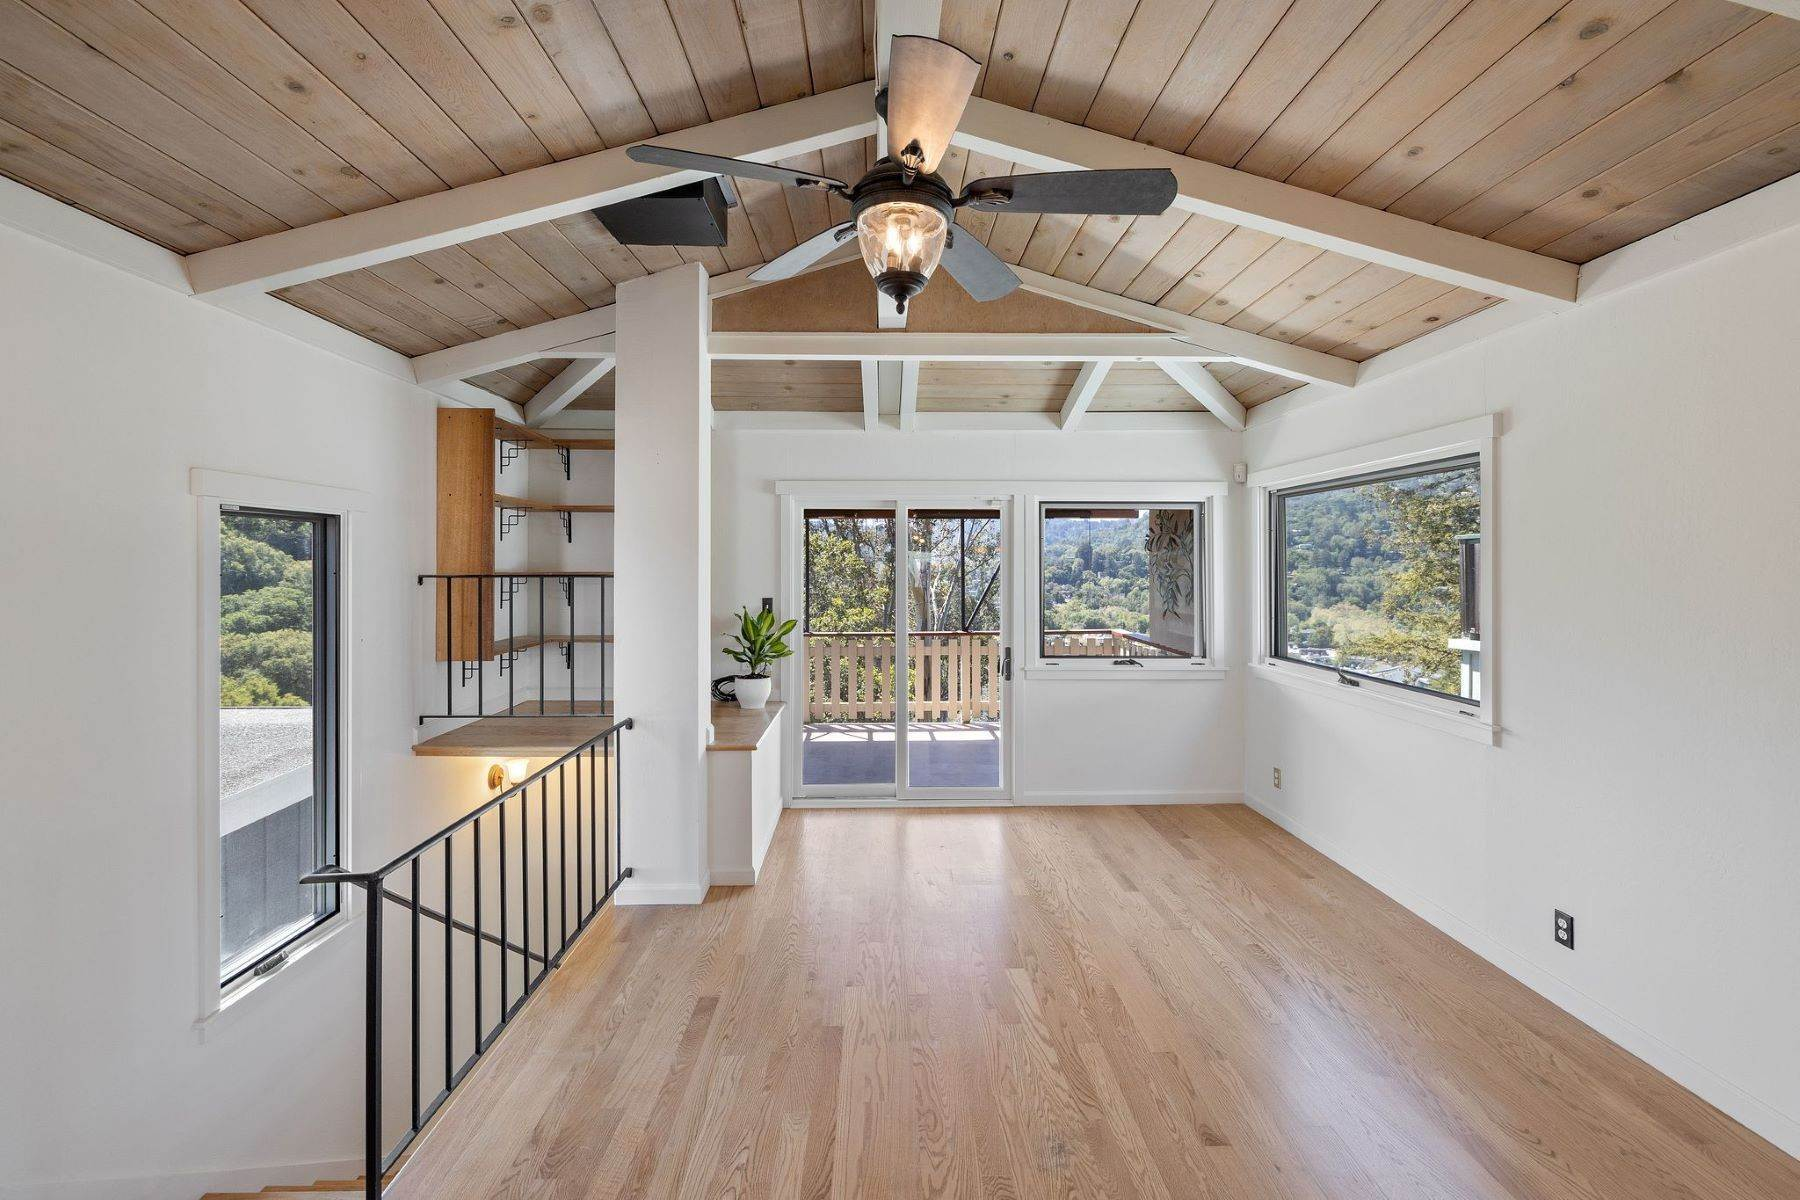 7. Single Family Homes for Sale at Adorable Fairfax Cottage 148 Ridgeway Avenue Fairfax, California 94930 United States